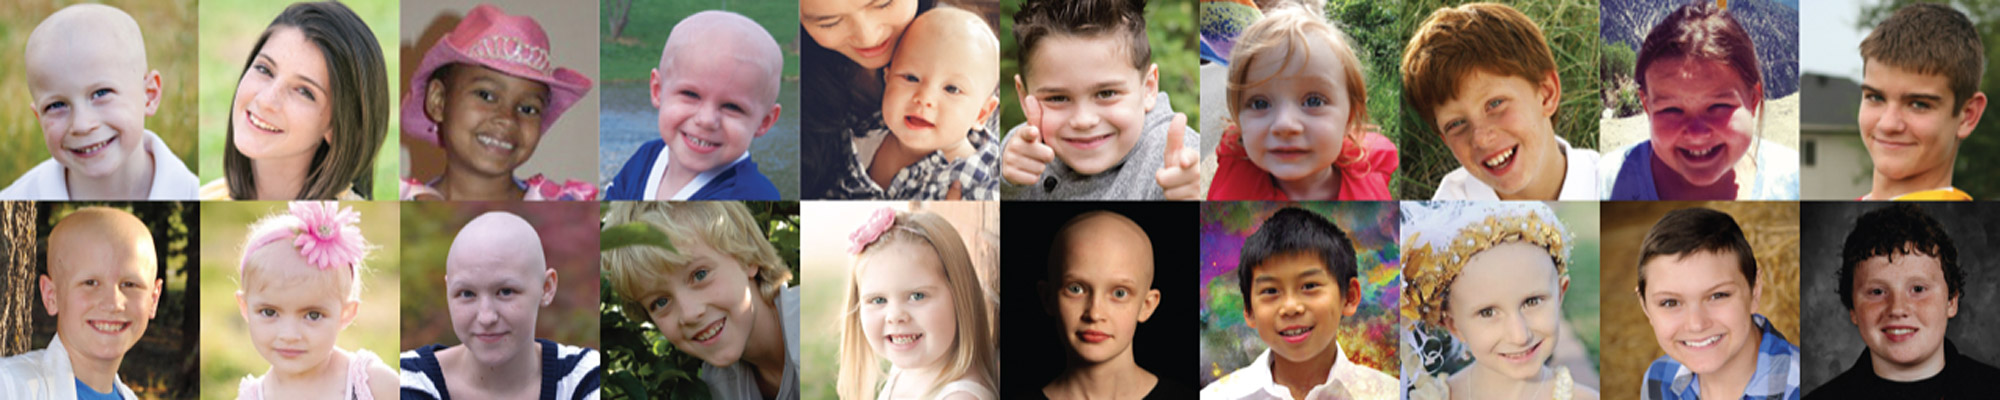 Faces of childrens cancer